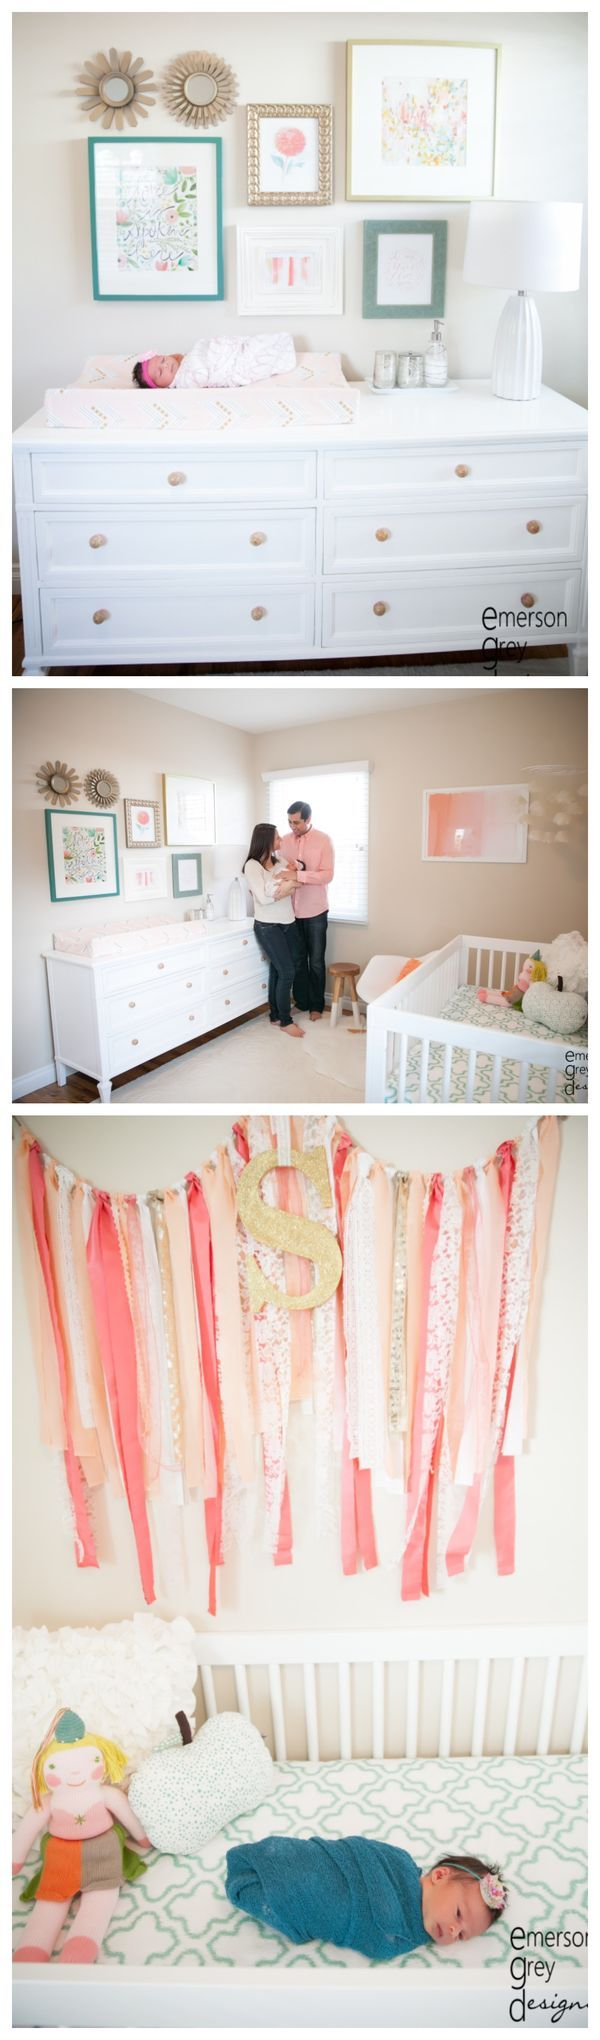 sloane 39 s coral and teal nursery getting ready for baby pinterest baby kinderzimmer. Black Bedroom Furniture Sets. Home Design Ideas